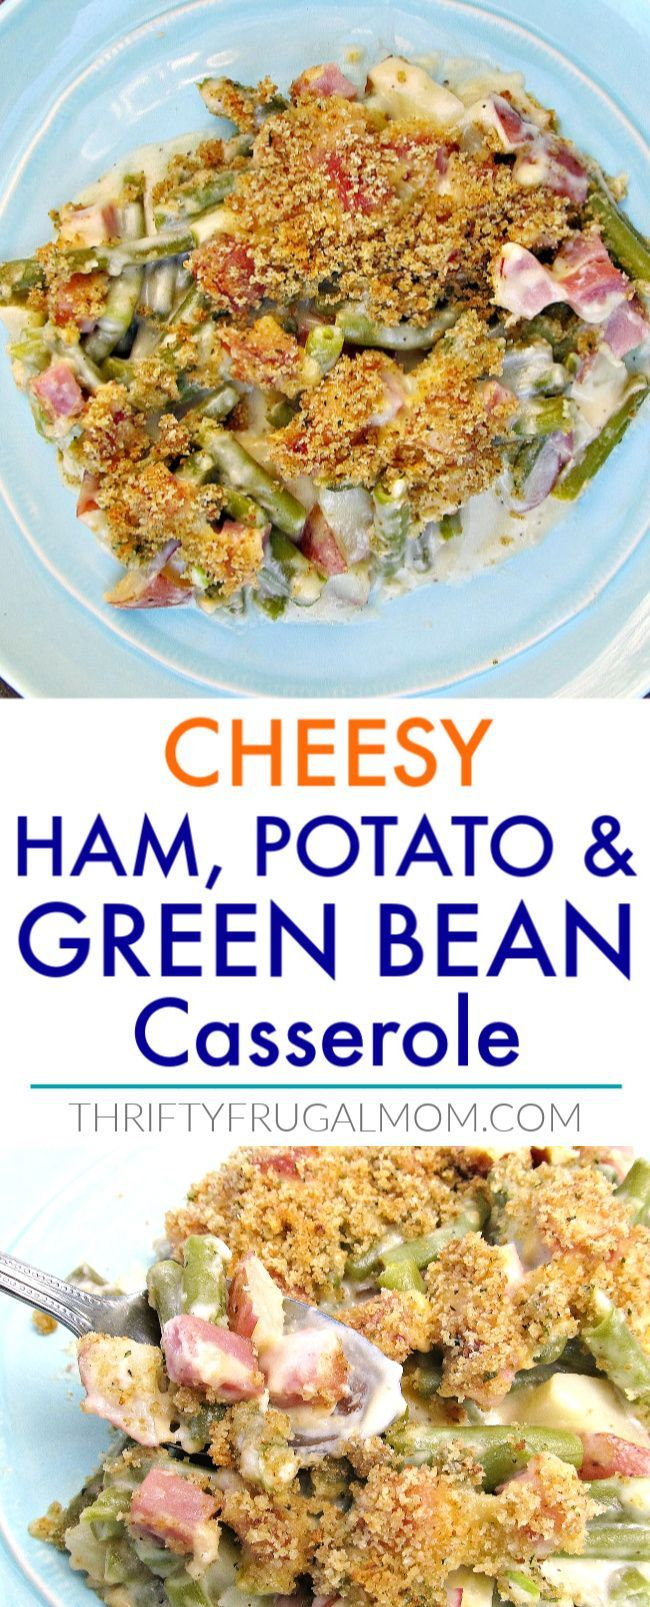 CHEESY HAM POTATO GREEN BEAN CASSEROLE